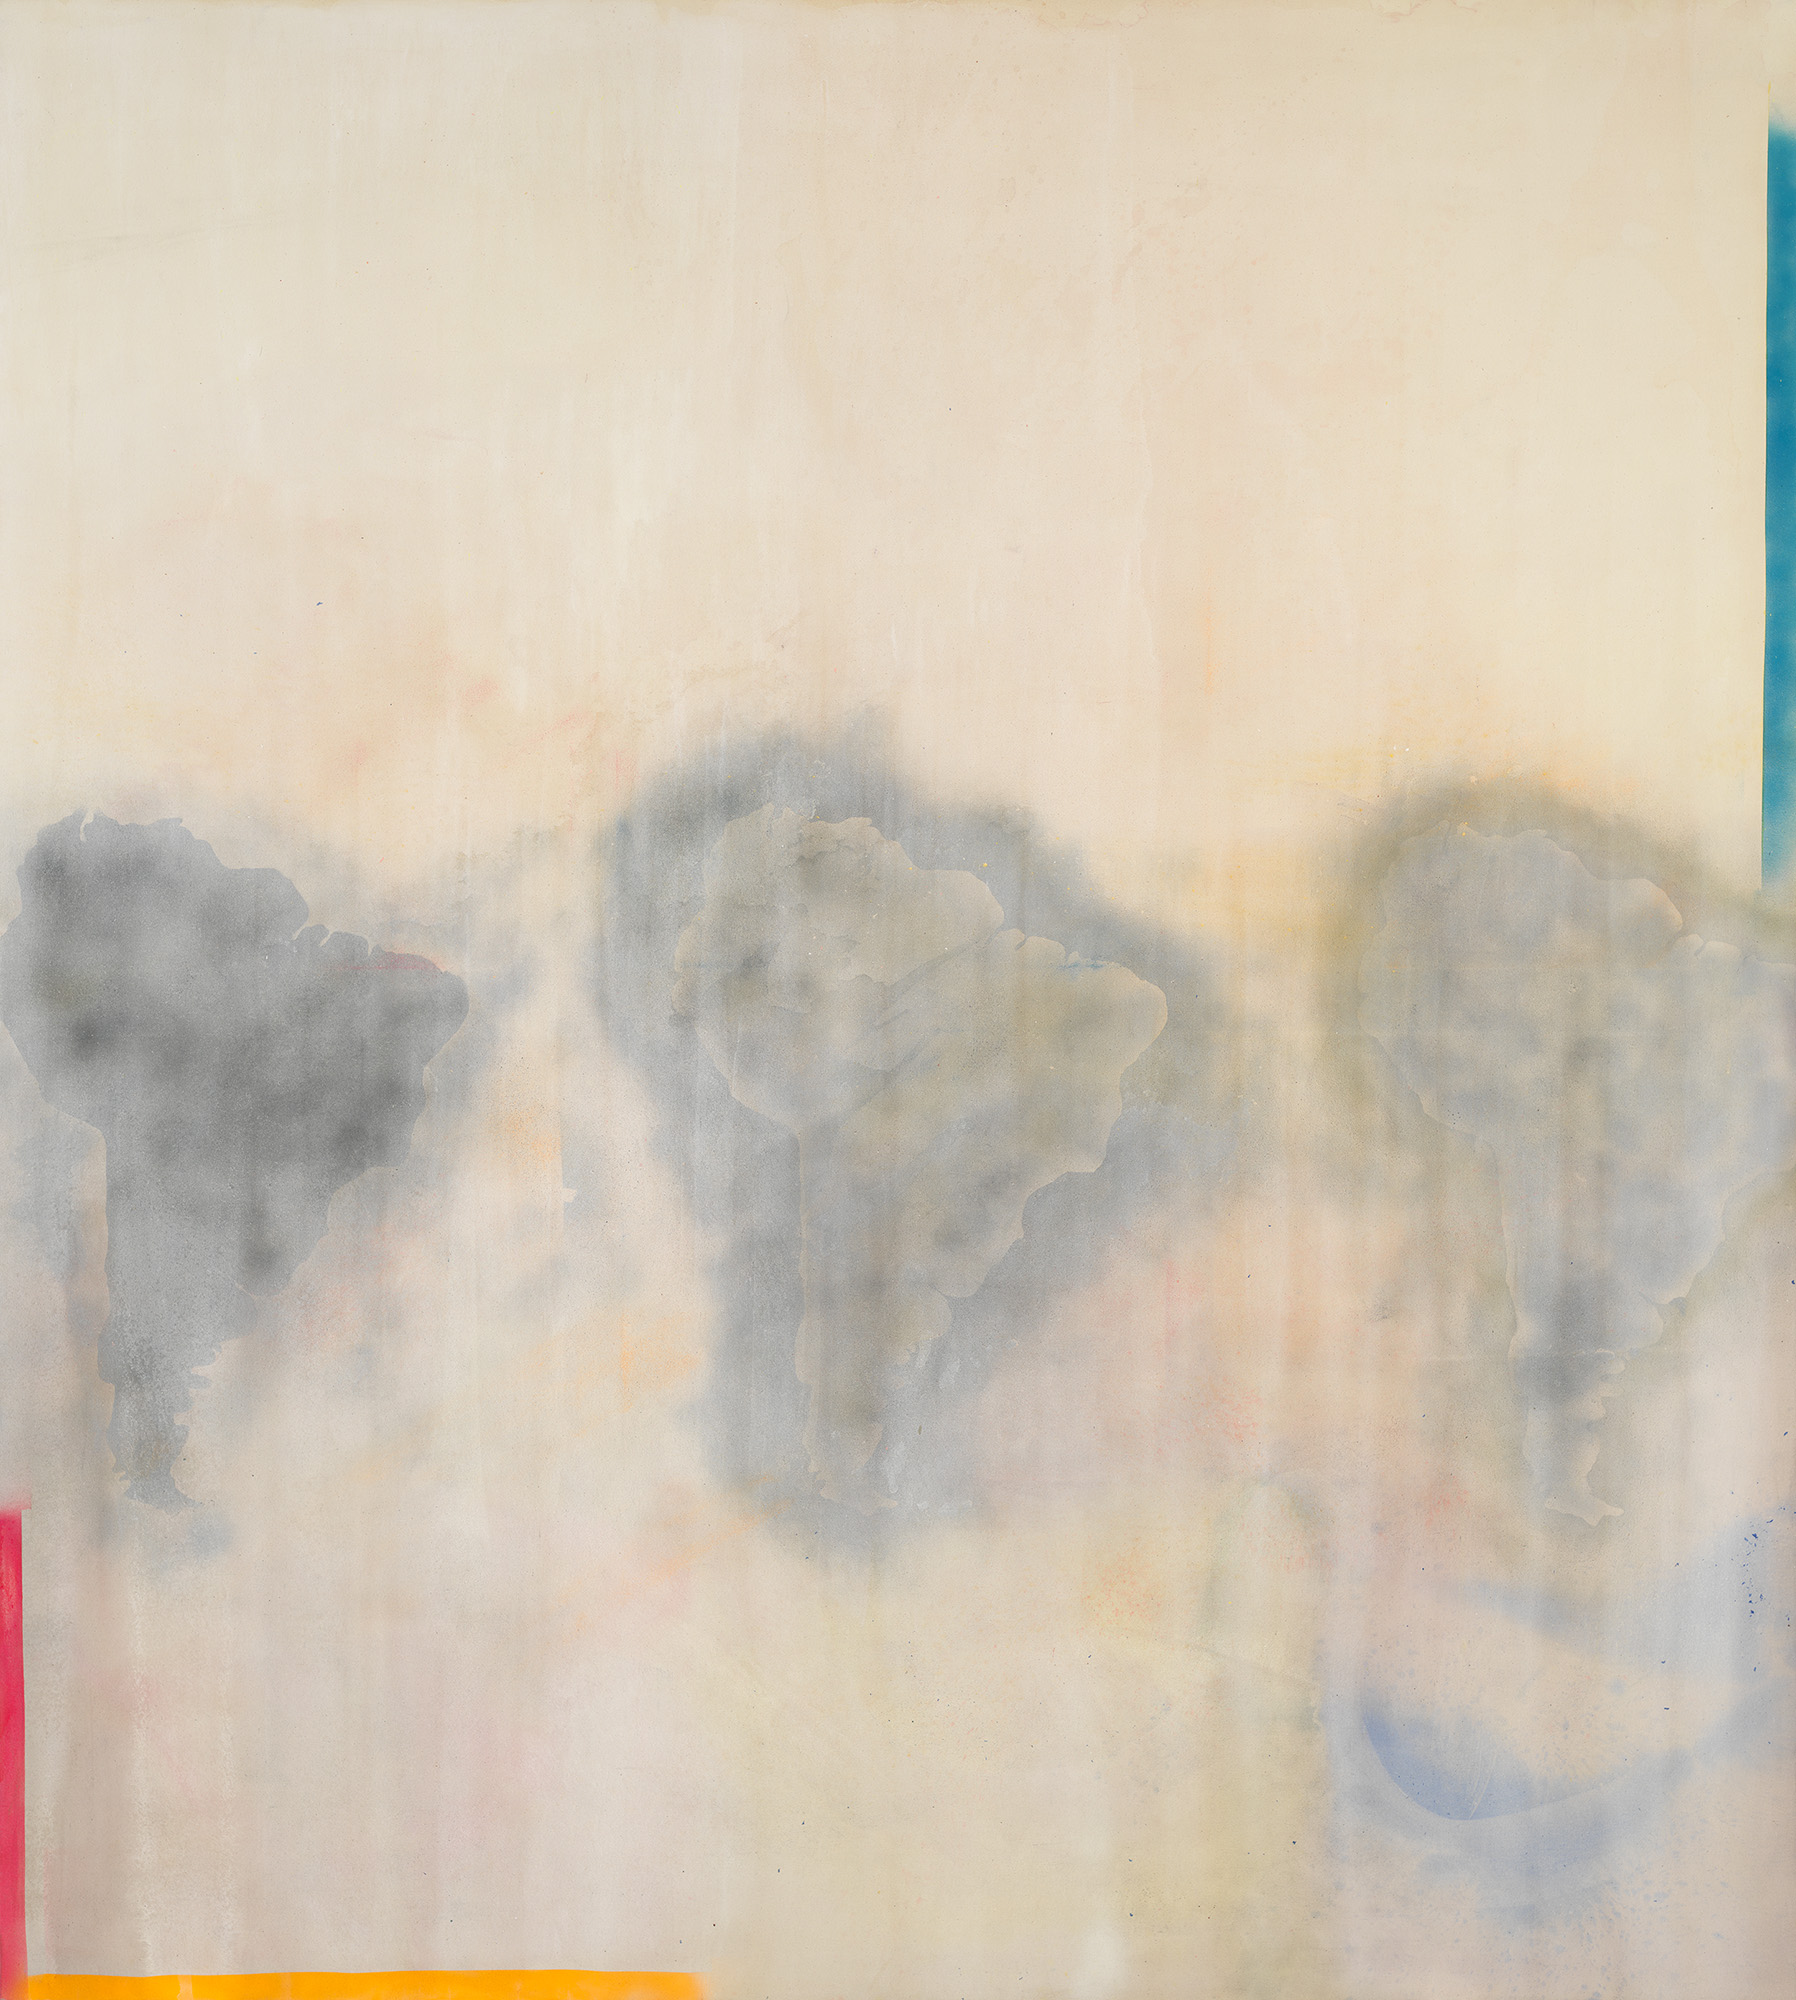 Frank Bowling, Dan Johnson's Surprise, 1969. Acrylic on canvas, 115 15/16 × 104 1/8 in. (294.5 × 264.5 cm). Whitney Museum of American Art, New York; purchase with funds from the Friends of the Whitney Museum of American Art 70.14. © 2019 Frank Bowling/Licensing by Artists Rights Society (ARS), New York